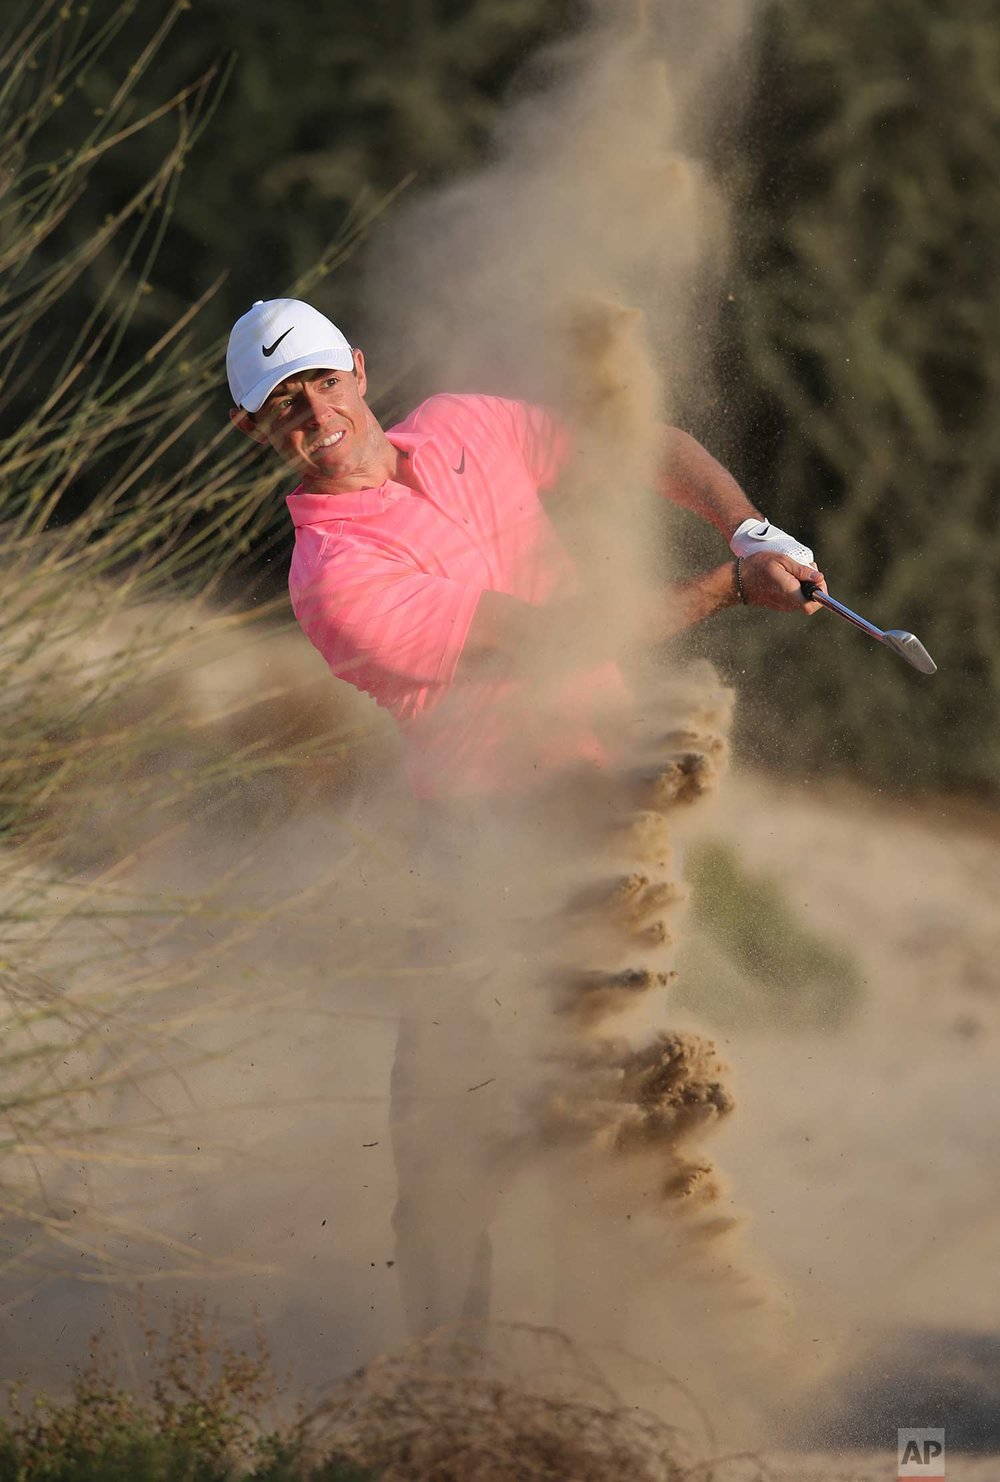 Northern Ireland's Rory McIlroy plays a shot on the dirt of the 8th hole during the second round of the Dubai Desert Classic golf tournament in Dubai, United Arab Emirates, Friday, Jan. 26, 2018. (AP Photo/Kamran Jebreili)